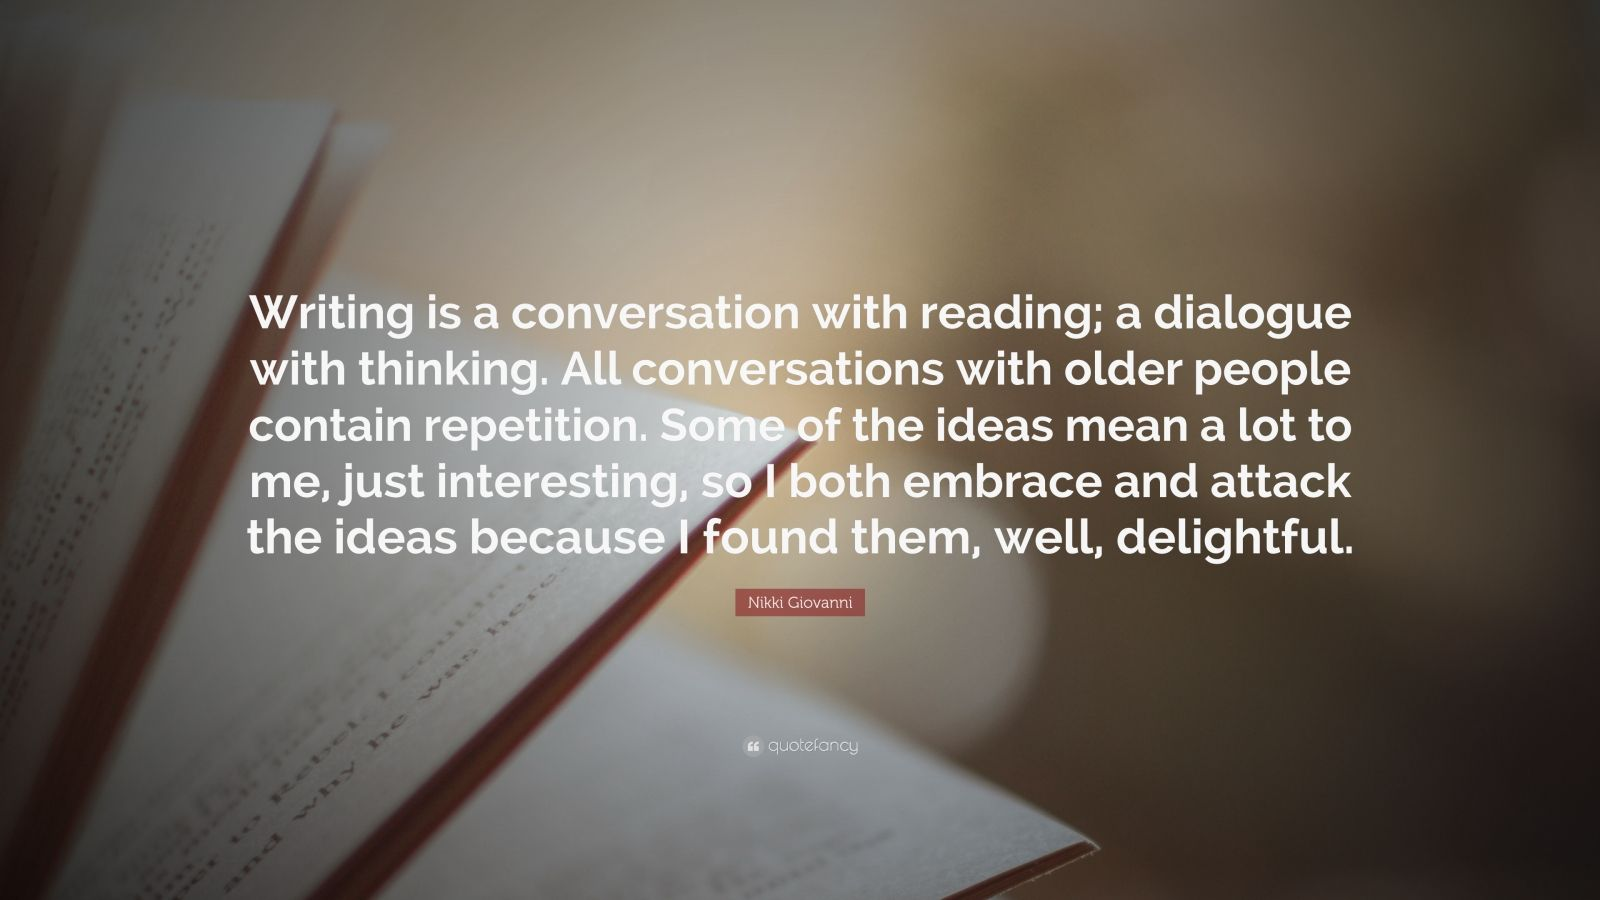 conversation quote essay Talking texts: writing dialogue in the college composition classroom by: john levine publication: the quarterly, vol 24, no 2 date: spring 2002 summary: is it possible for an inexperienced writer to juggle the ideas of several authors to create a coherent, analytical essay.